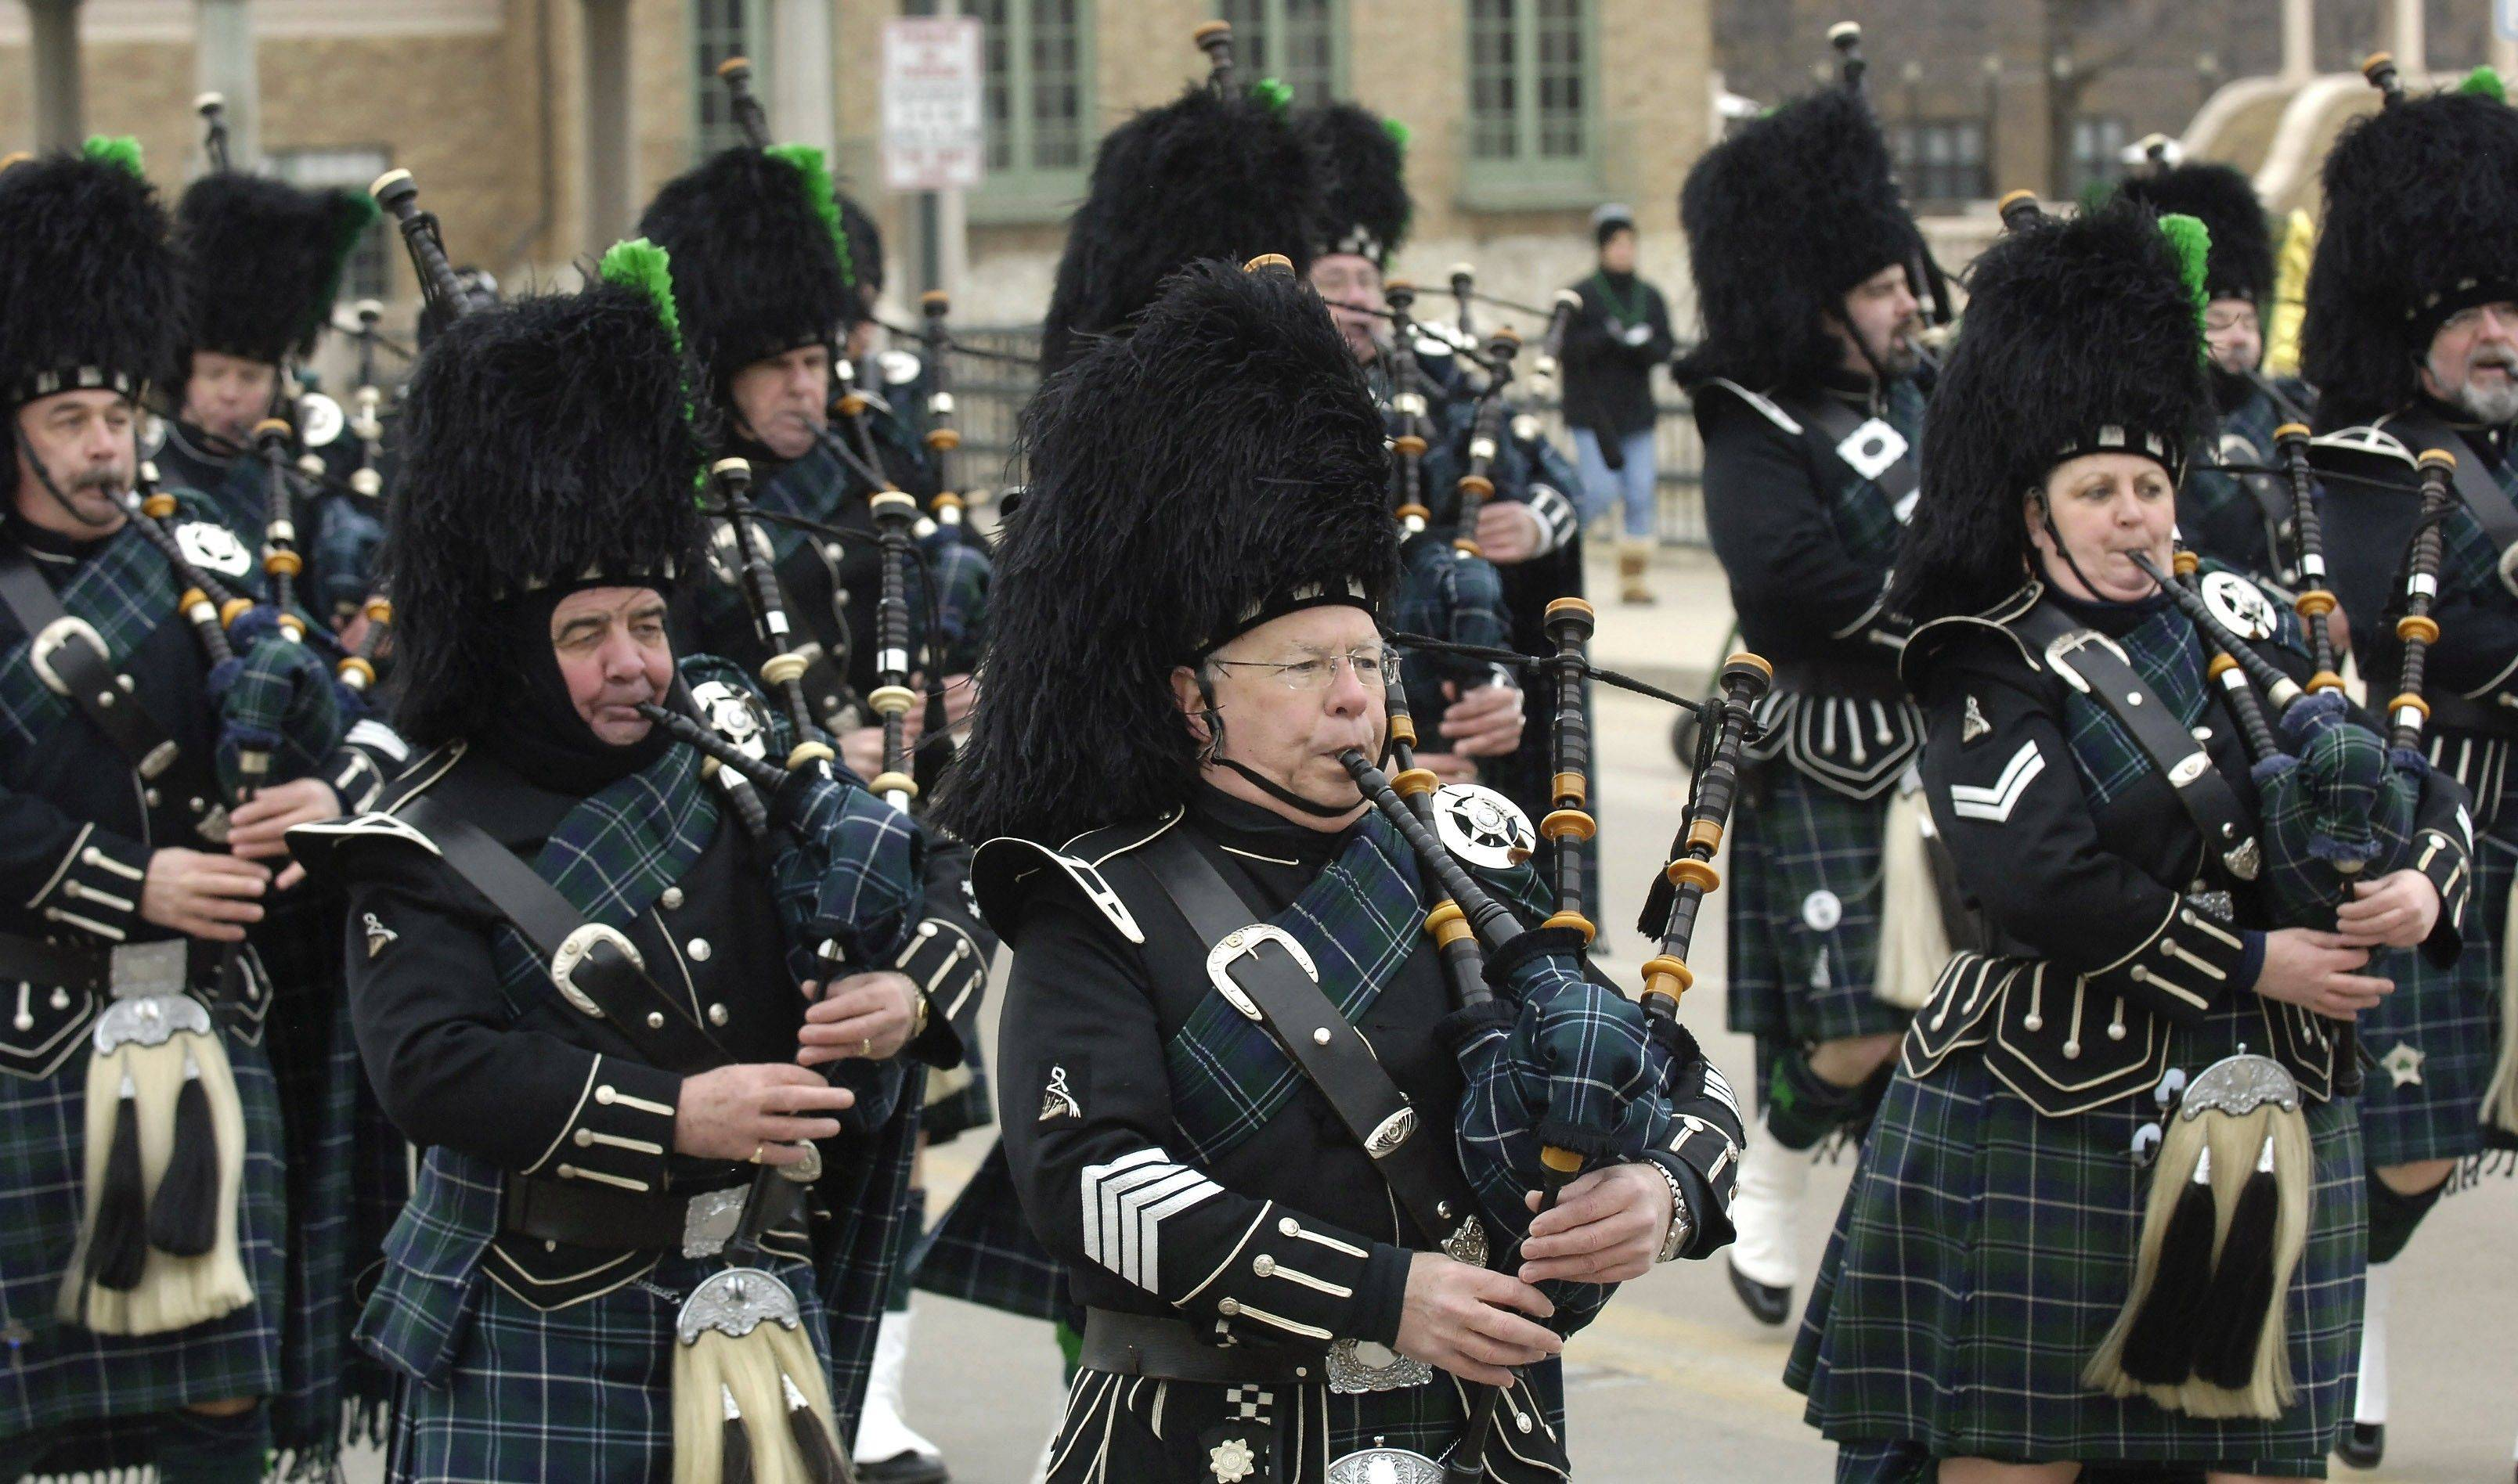 The Bagpipes and Drums of the Emerald Society of the Chicago Police Department make their way over the Fox River Bridge in St. Charles' annual St. Patrick's Day parade.